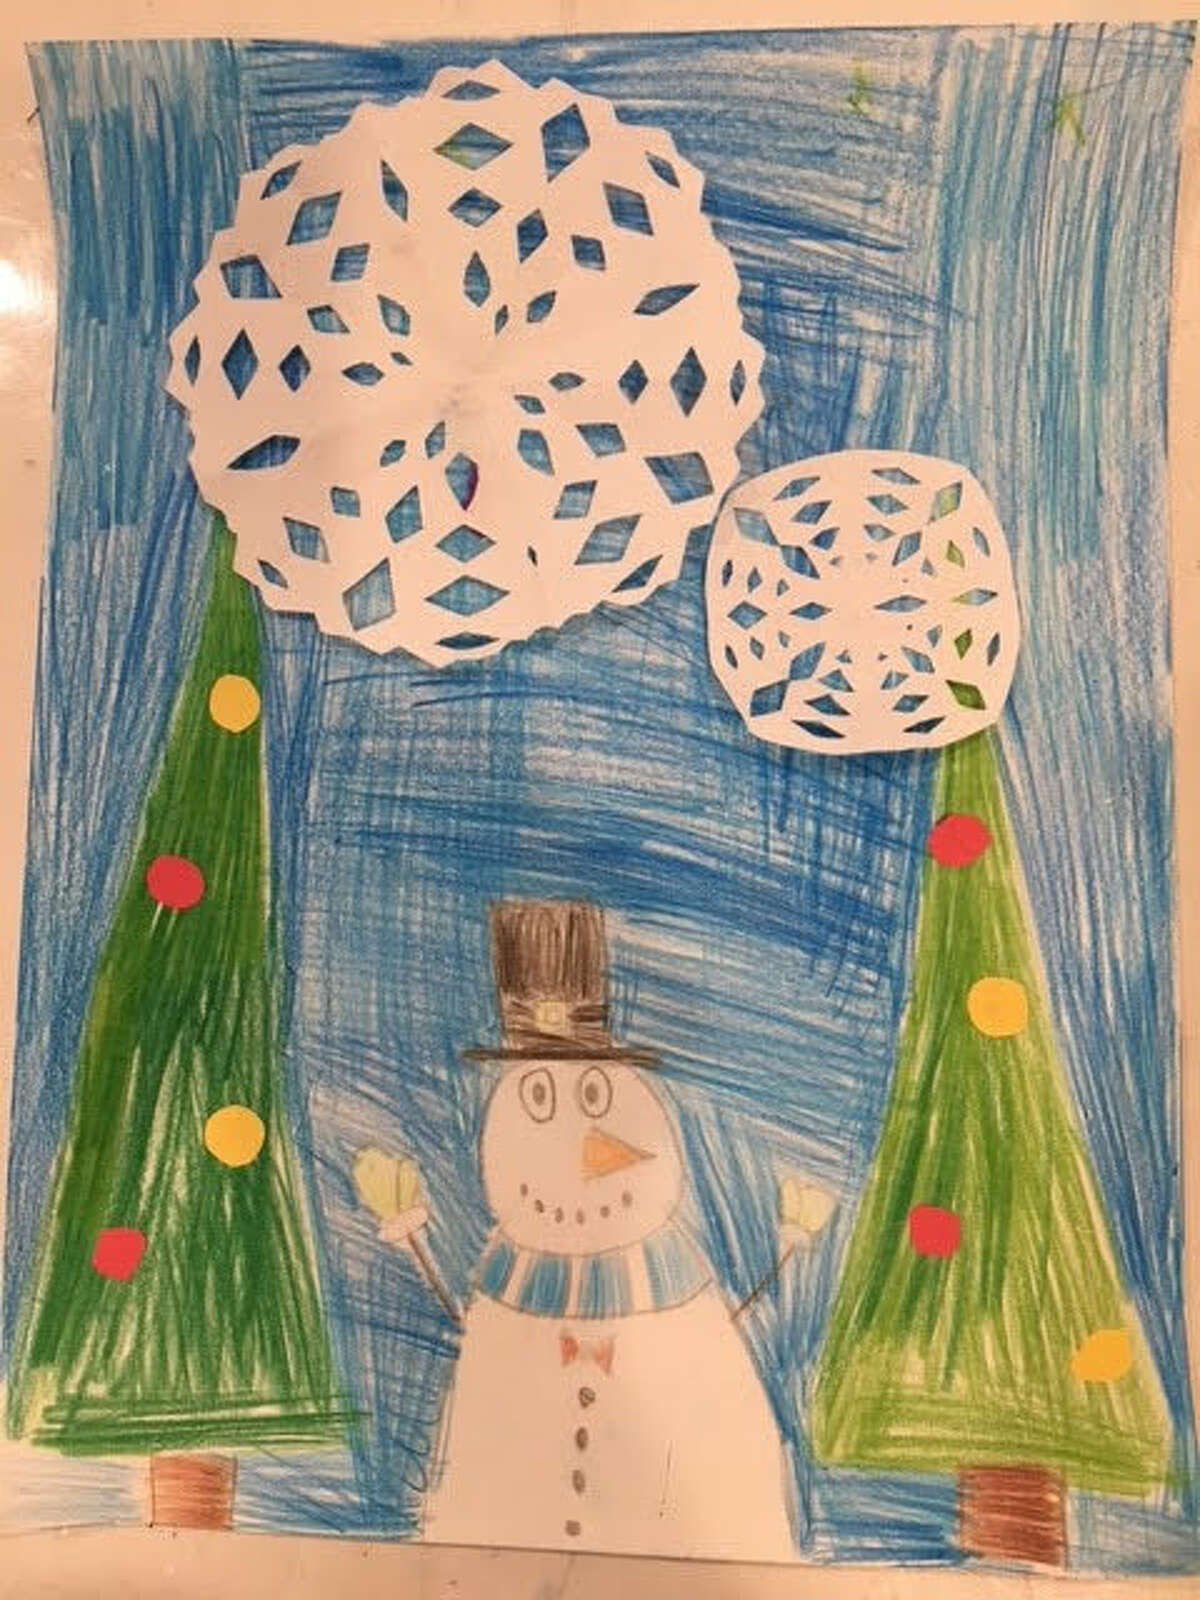 Finalist entry in the 2020 holiday card contest by Andrew Sokolowski, 2nd grade at Voorheesville Elementary School.